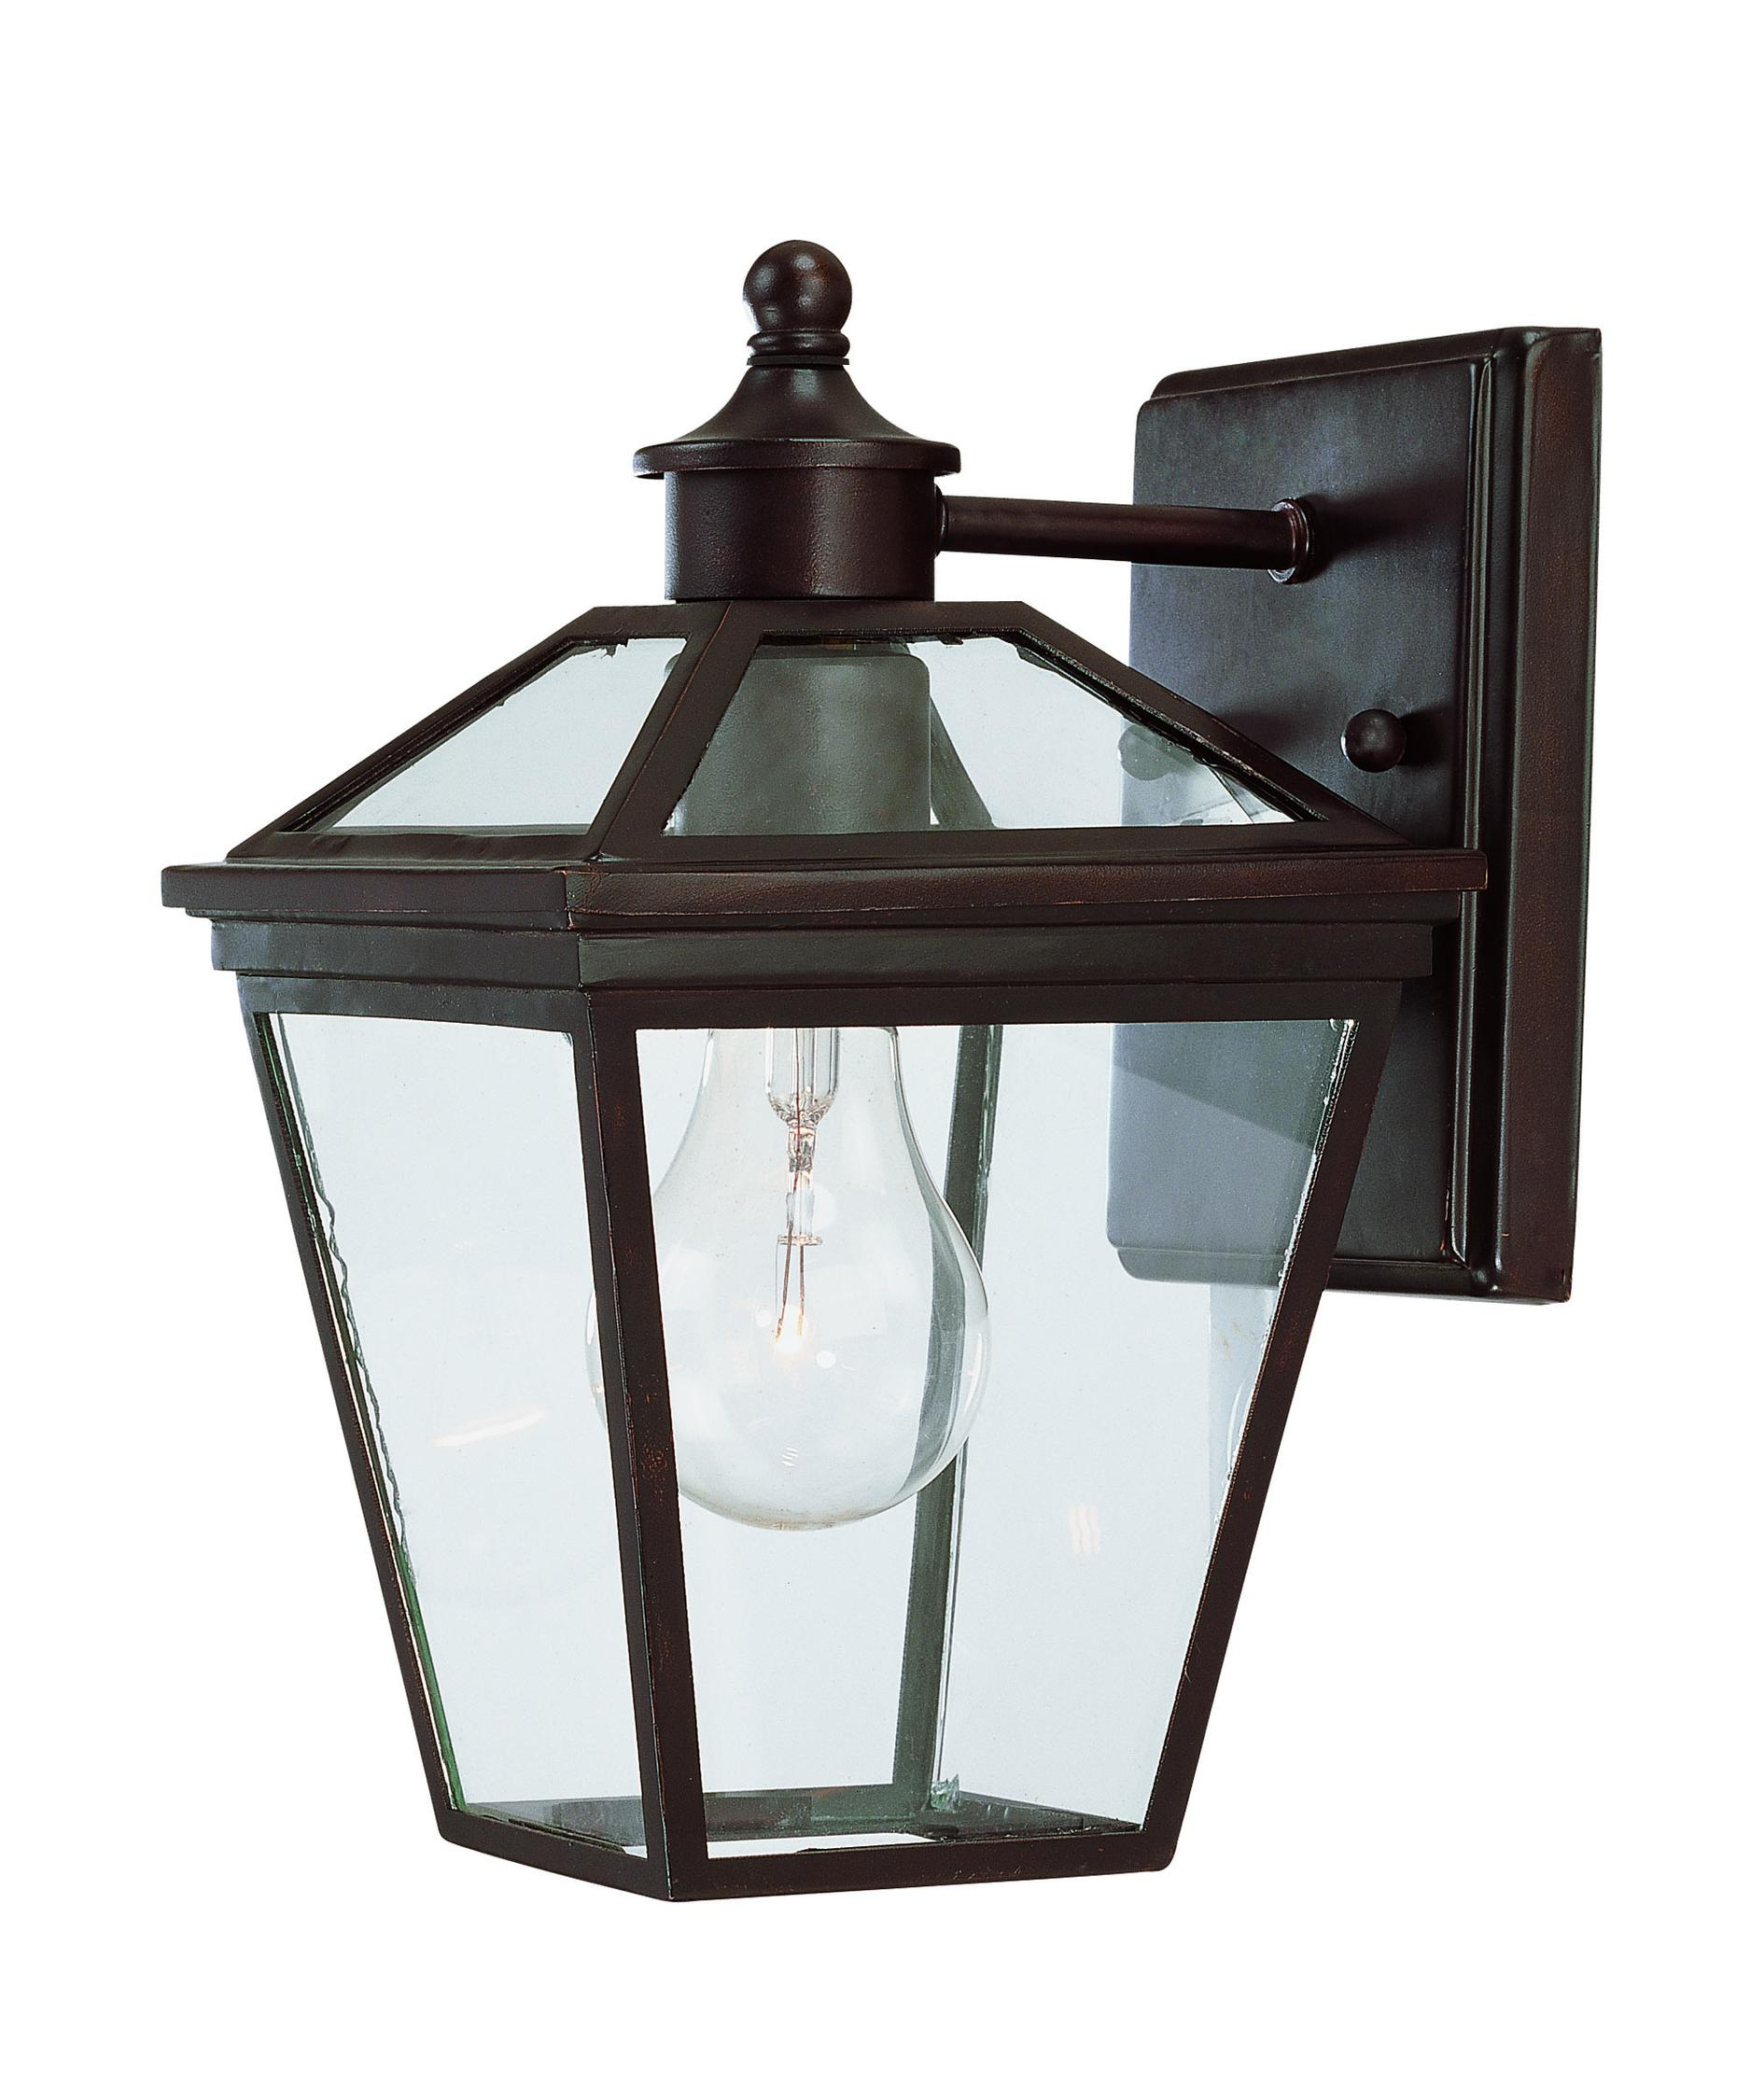 shown in english bronze finish and clear glass - Savoy Lighting